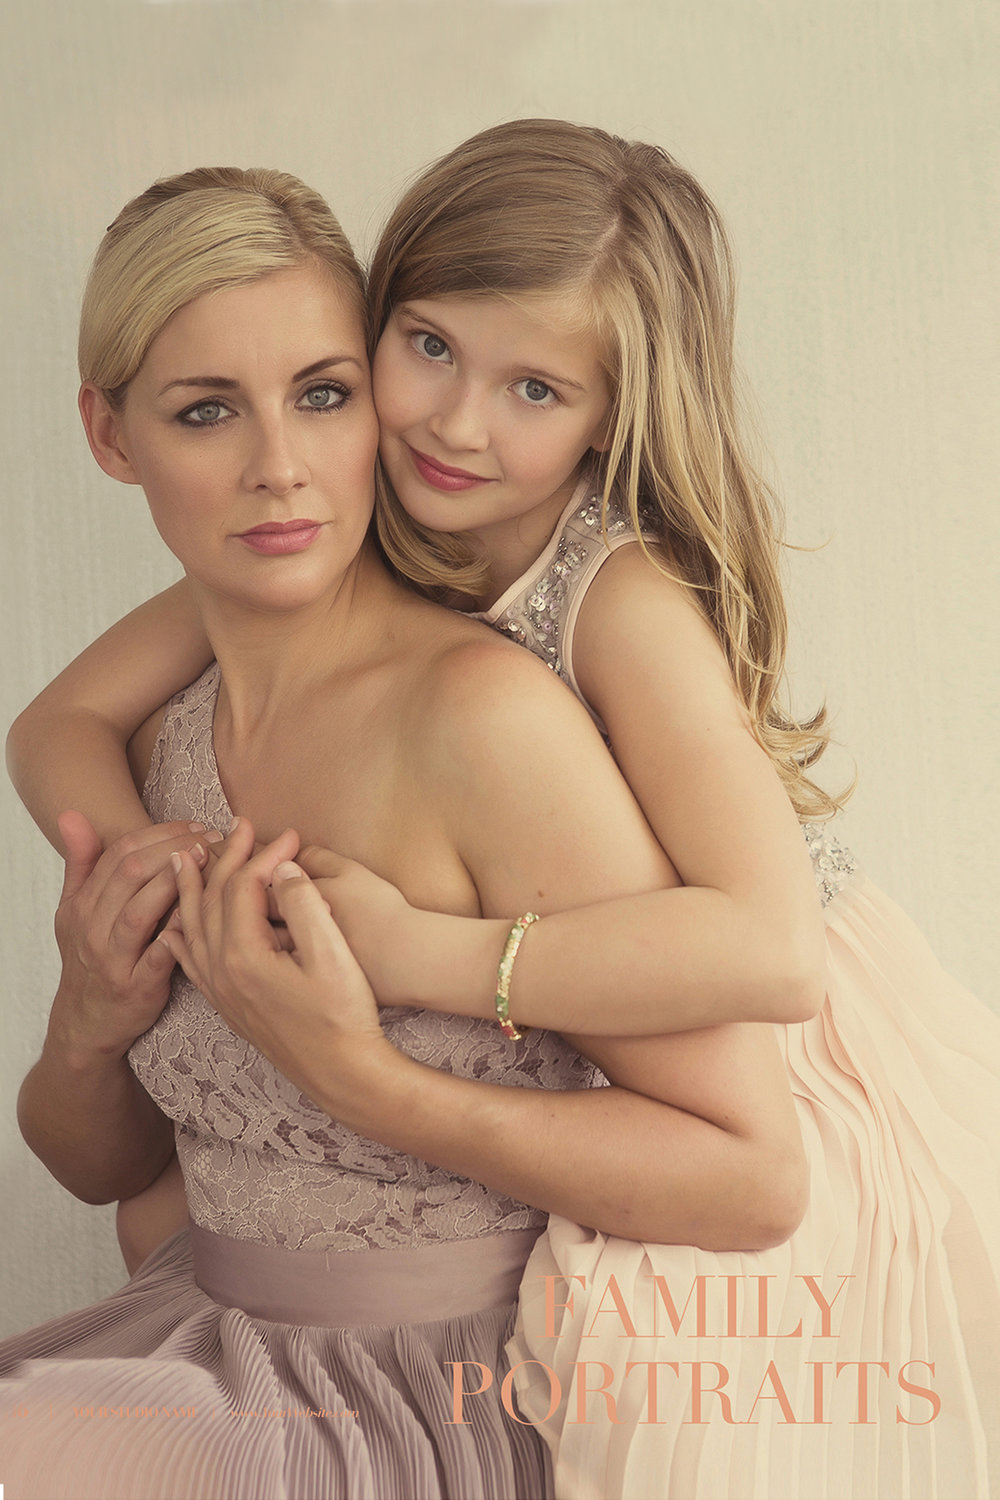 mother_daughter_photoshoot_lenkajones_suebryce.jpg